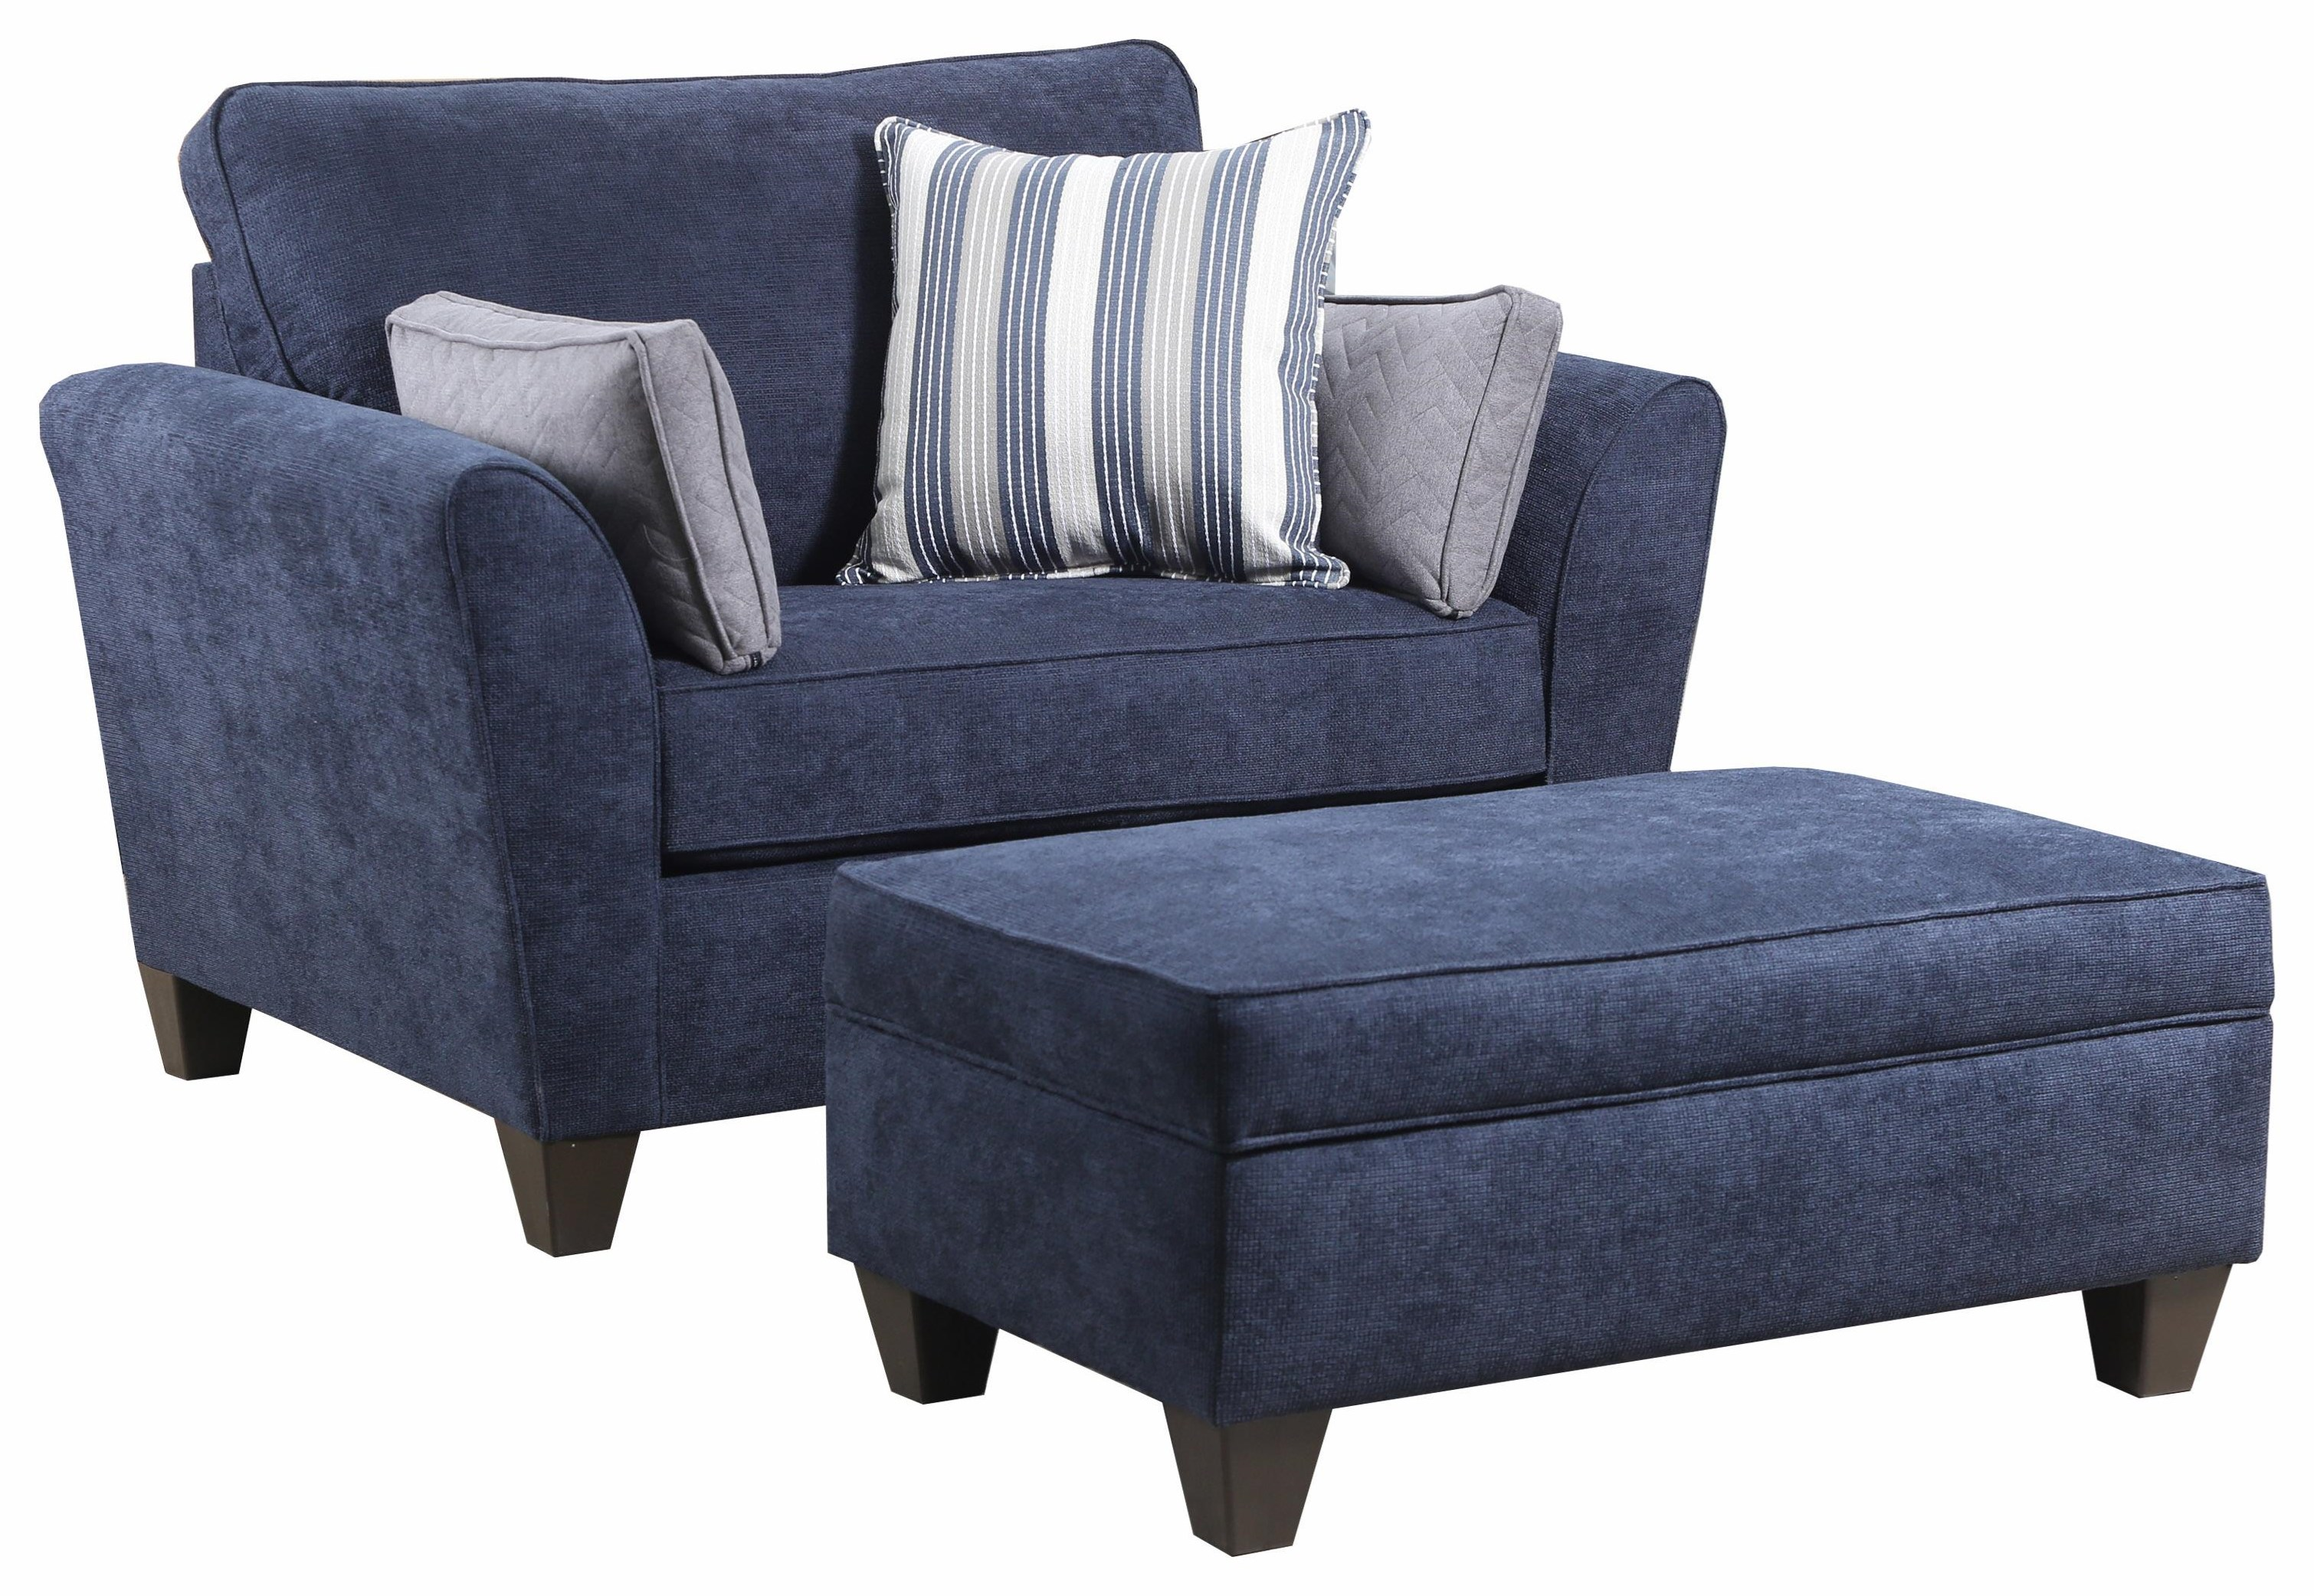 7081 Chair and Ottoman by Lane at Value City Furniture